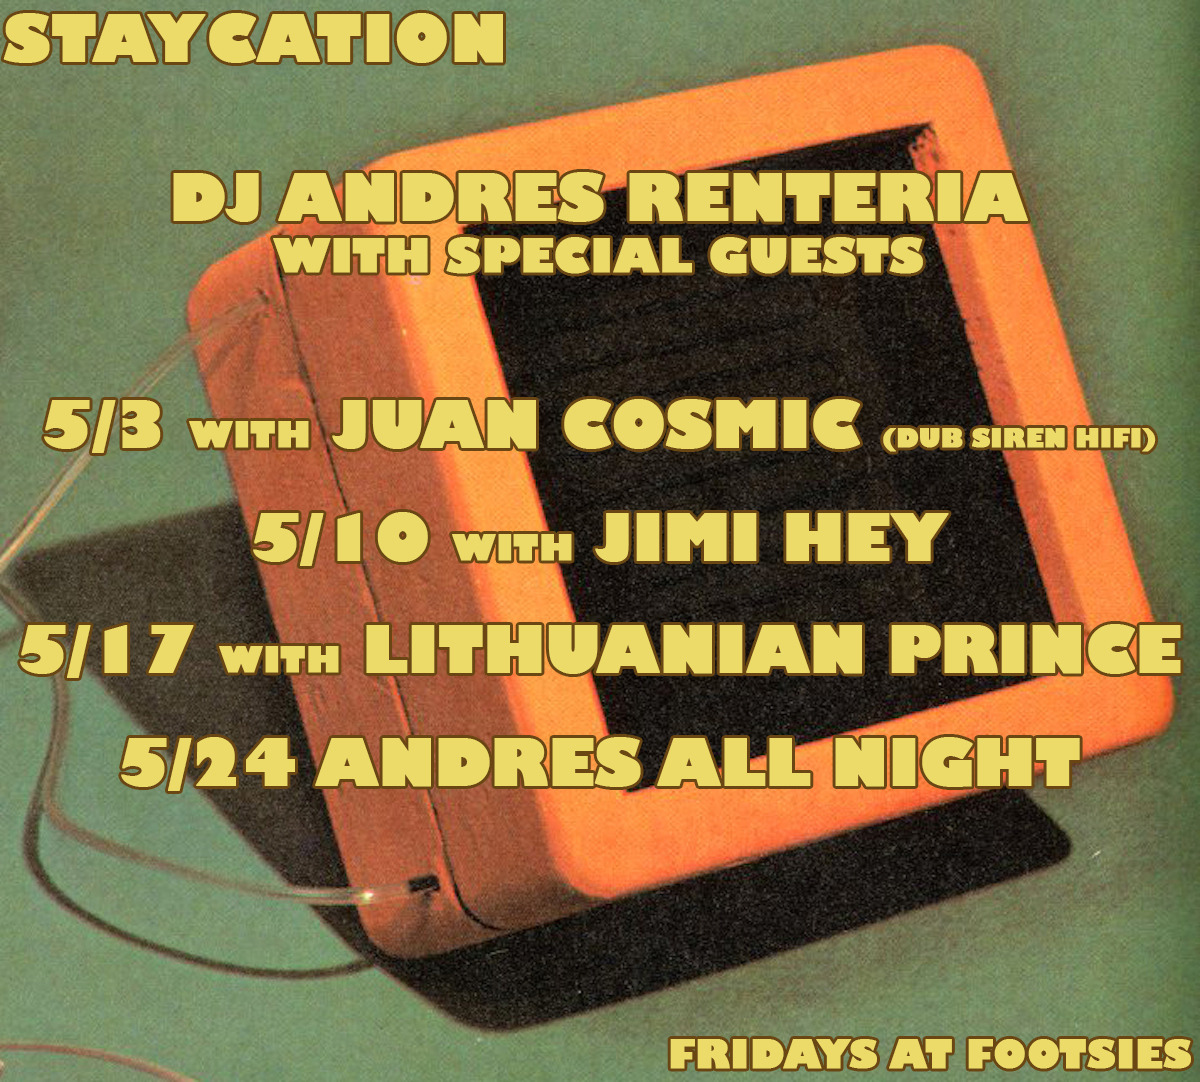 Tonight at Footsie's Bar, I'll be spinning records with one of my oldest friends, Juan Cosmic from the Dub Siren HiFi Soundsystem!!  He'll be bring in lots and lots of original Jamaican 45s from the 60s and 70s.  Sure to please…10pm-2am at the best bar in Los Angeles.  I'll be spinning soul, rock, international shakers, funky 45s, and more!!!!!